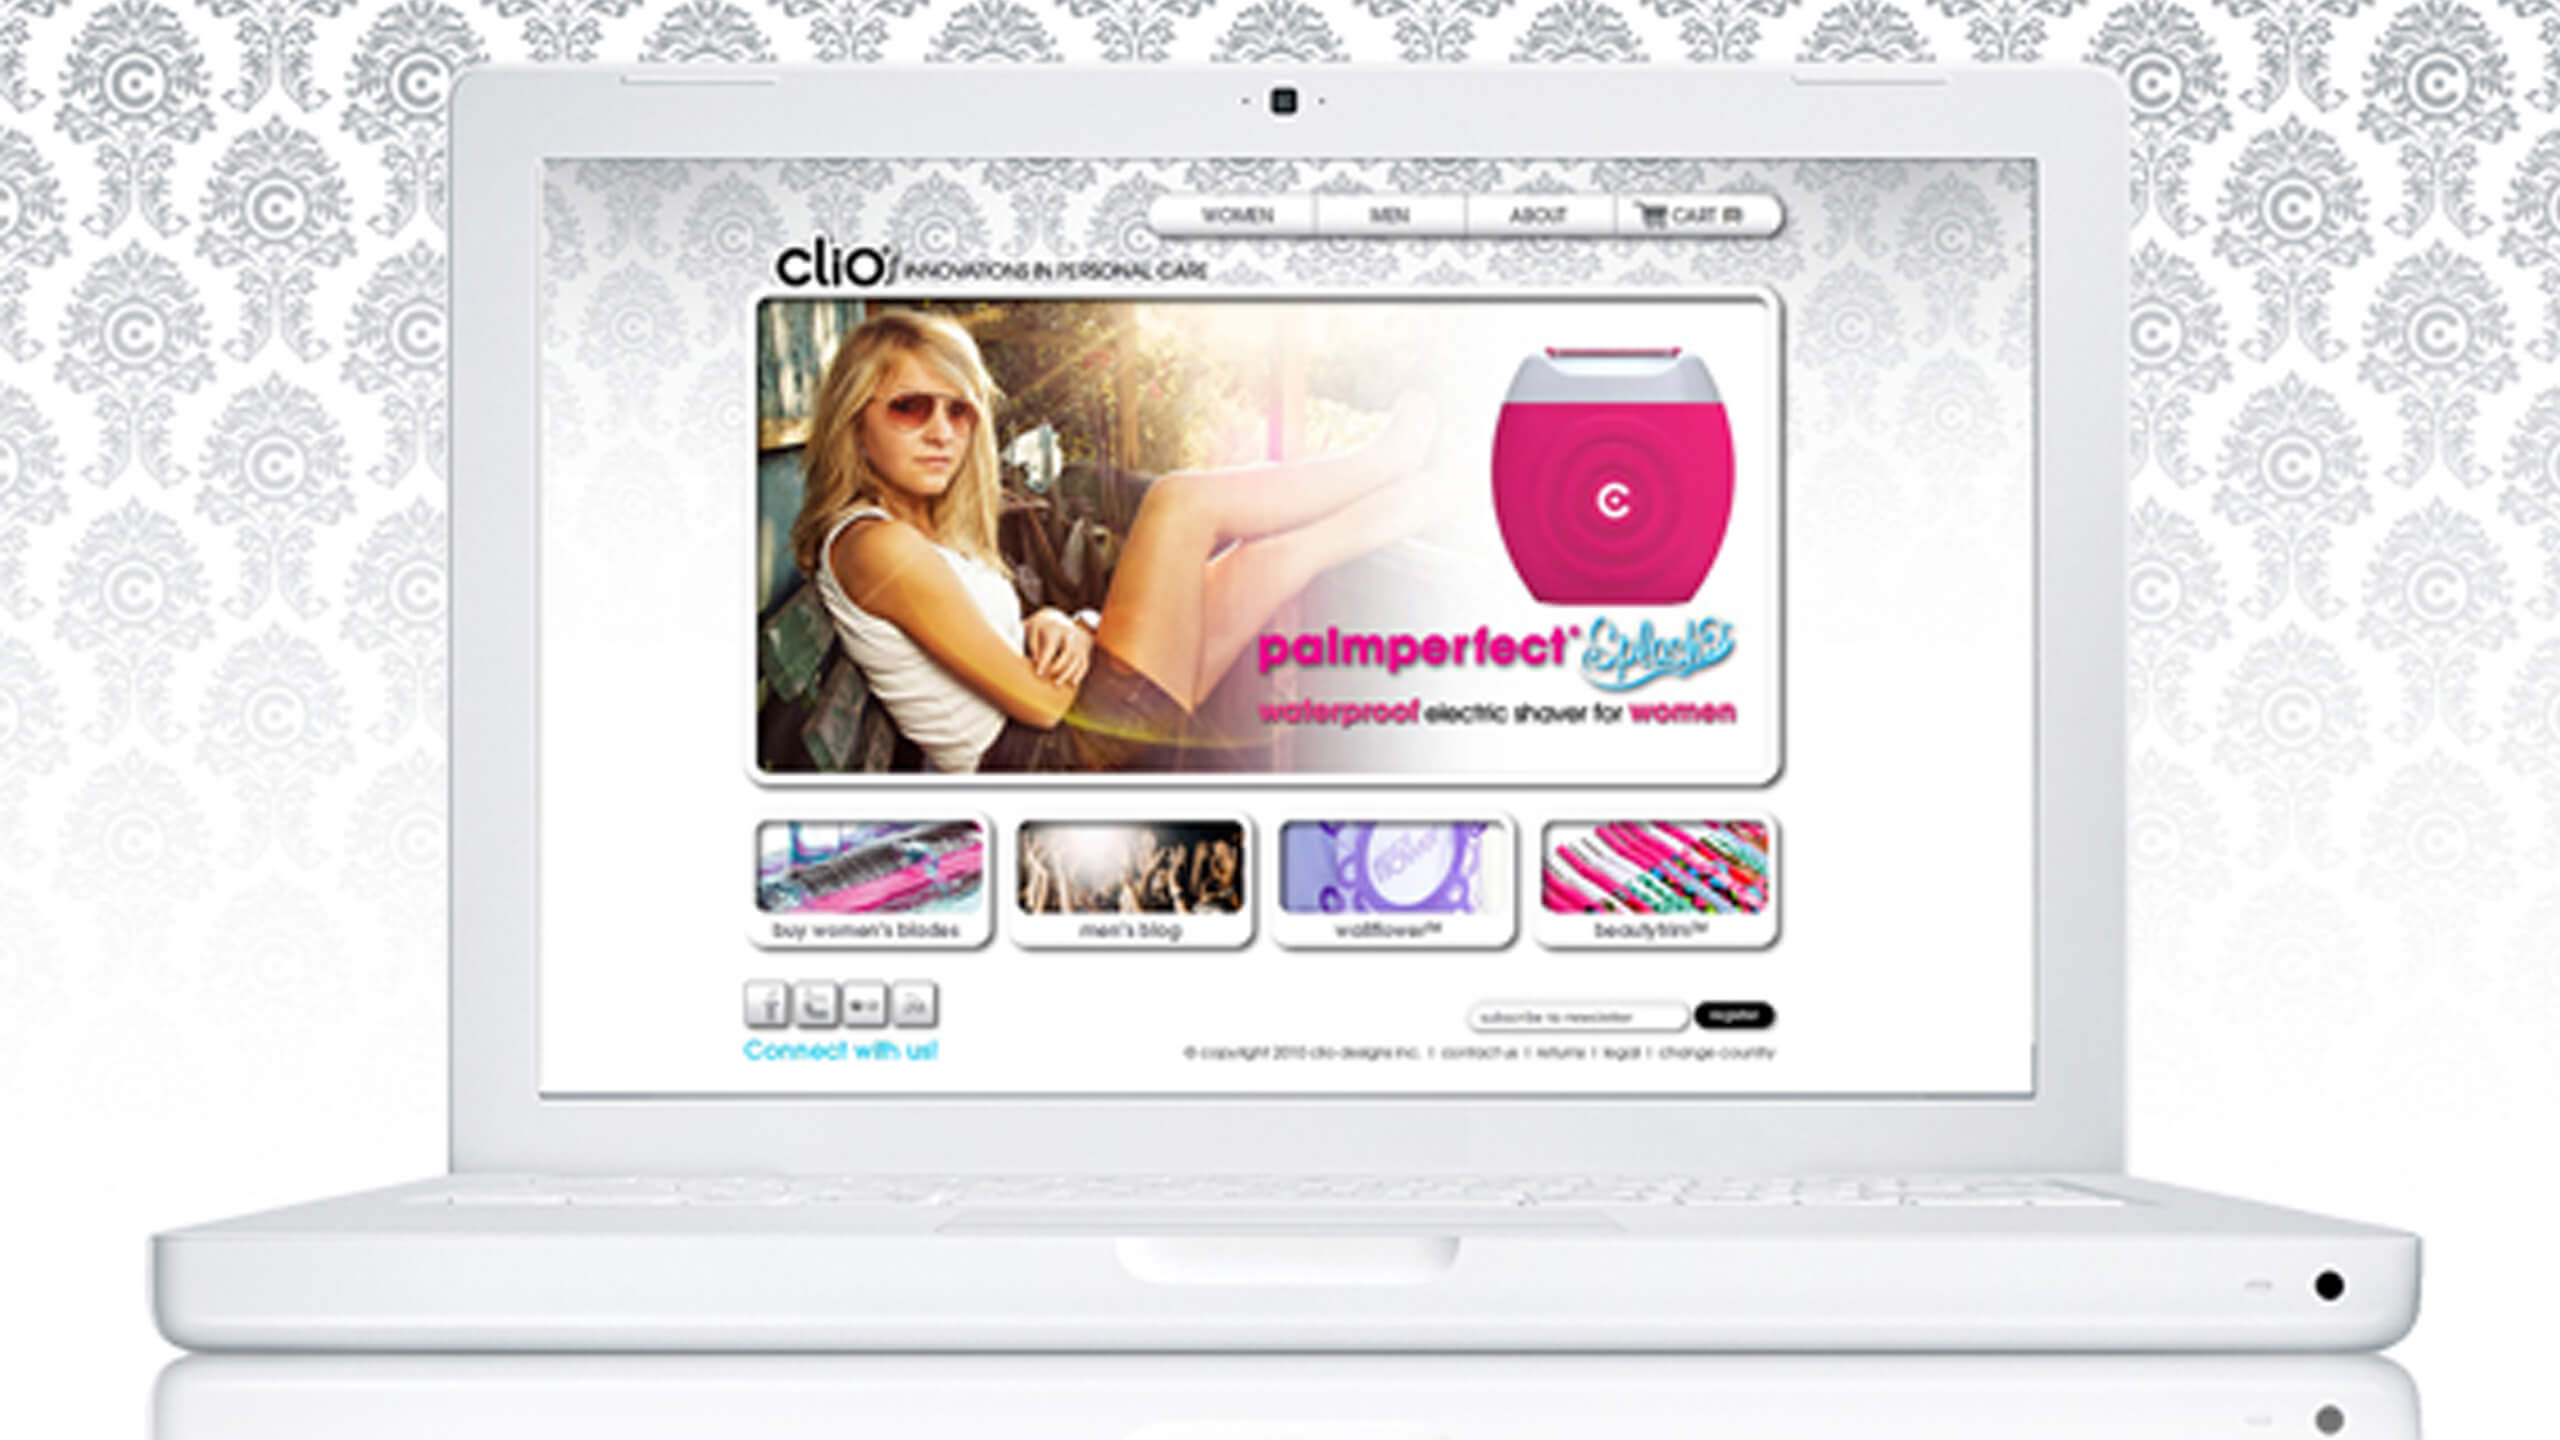 CLIOSTYLE.COM LAUNCHES